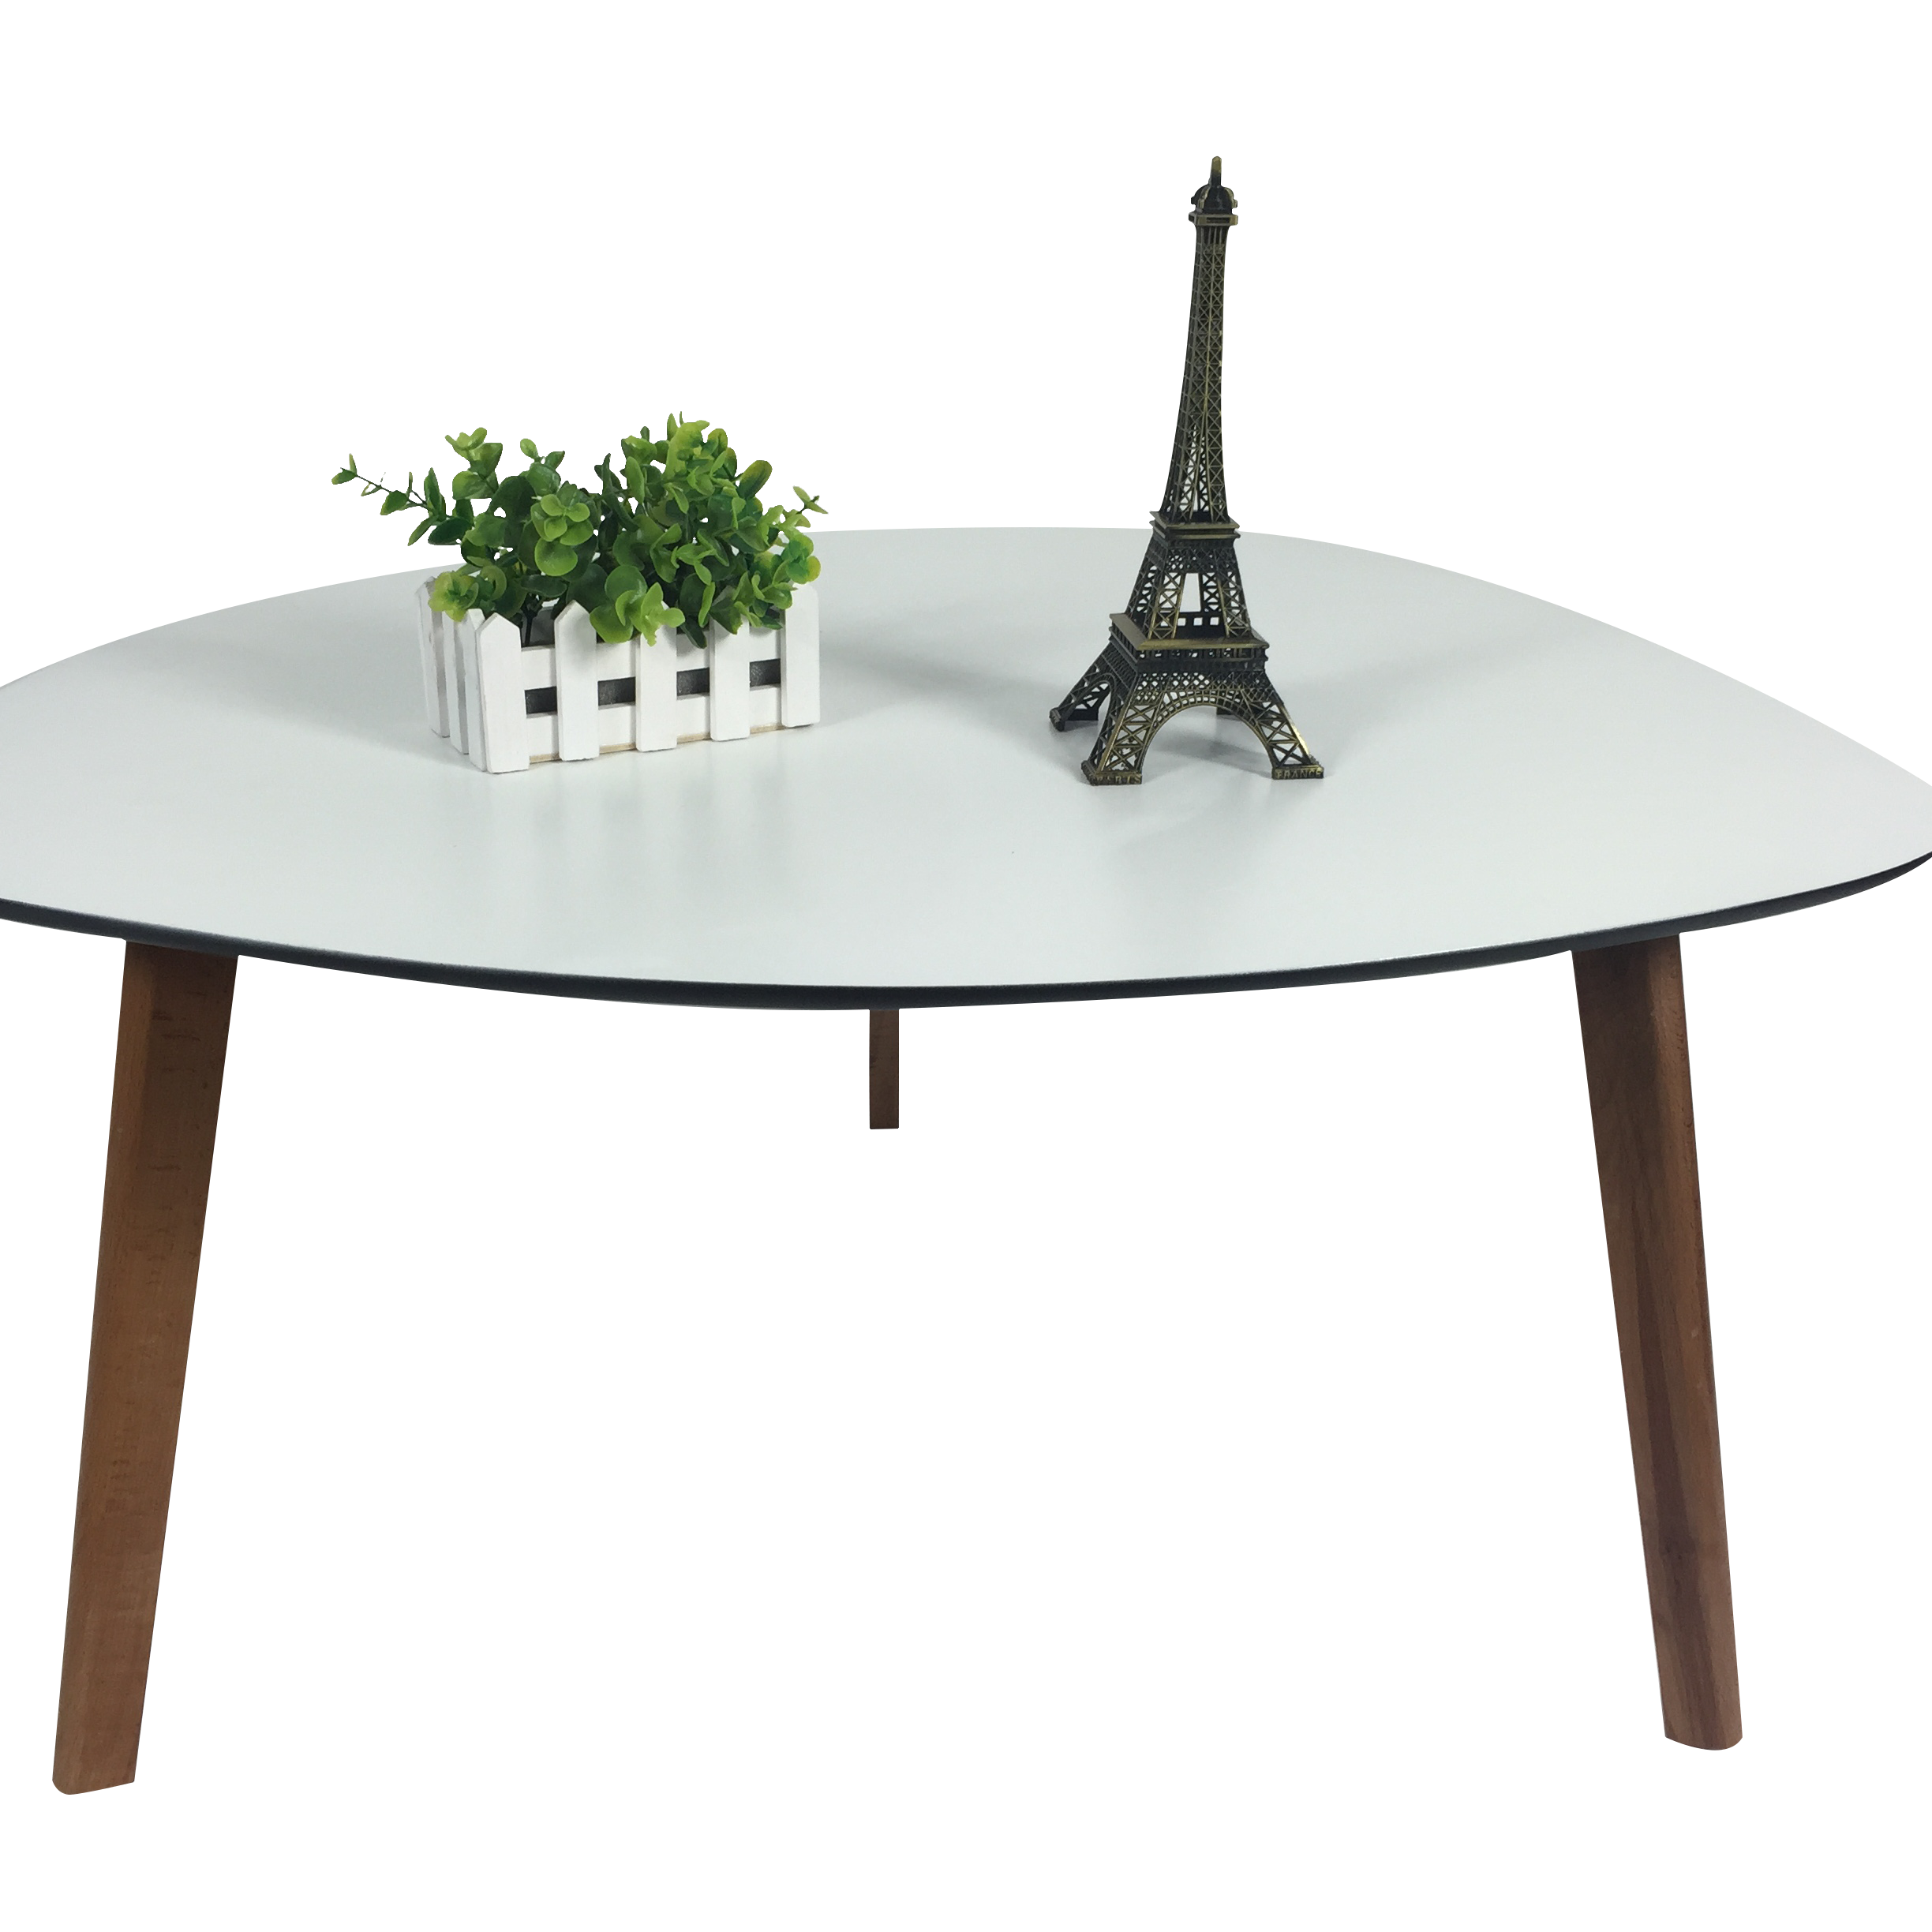 China Coffee Table With No Legs China Coffee Table With No Legs Manufacturers And Suppliers On Alibaba Com